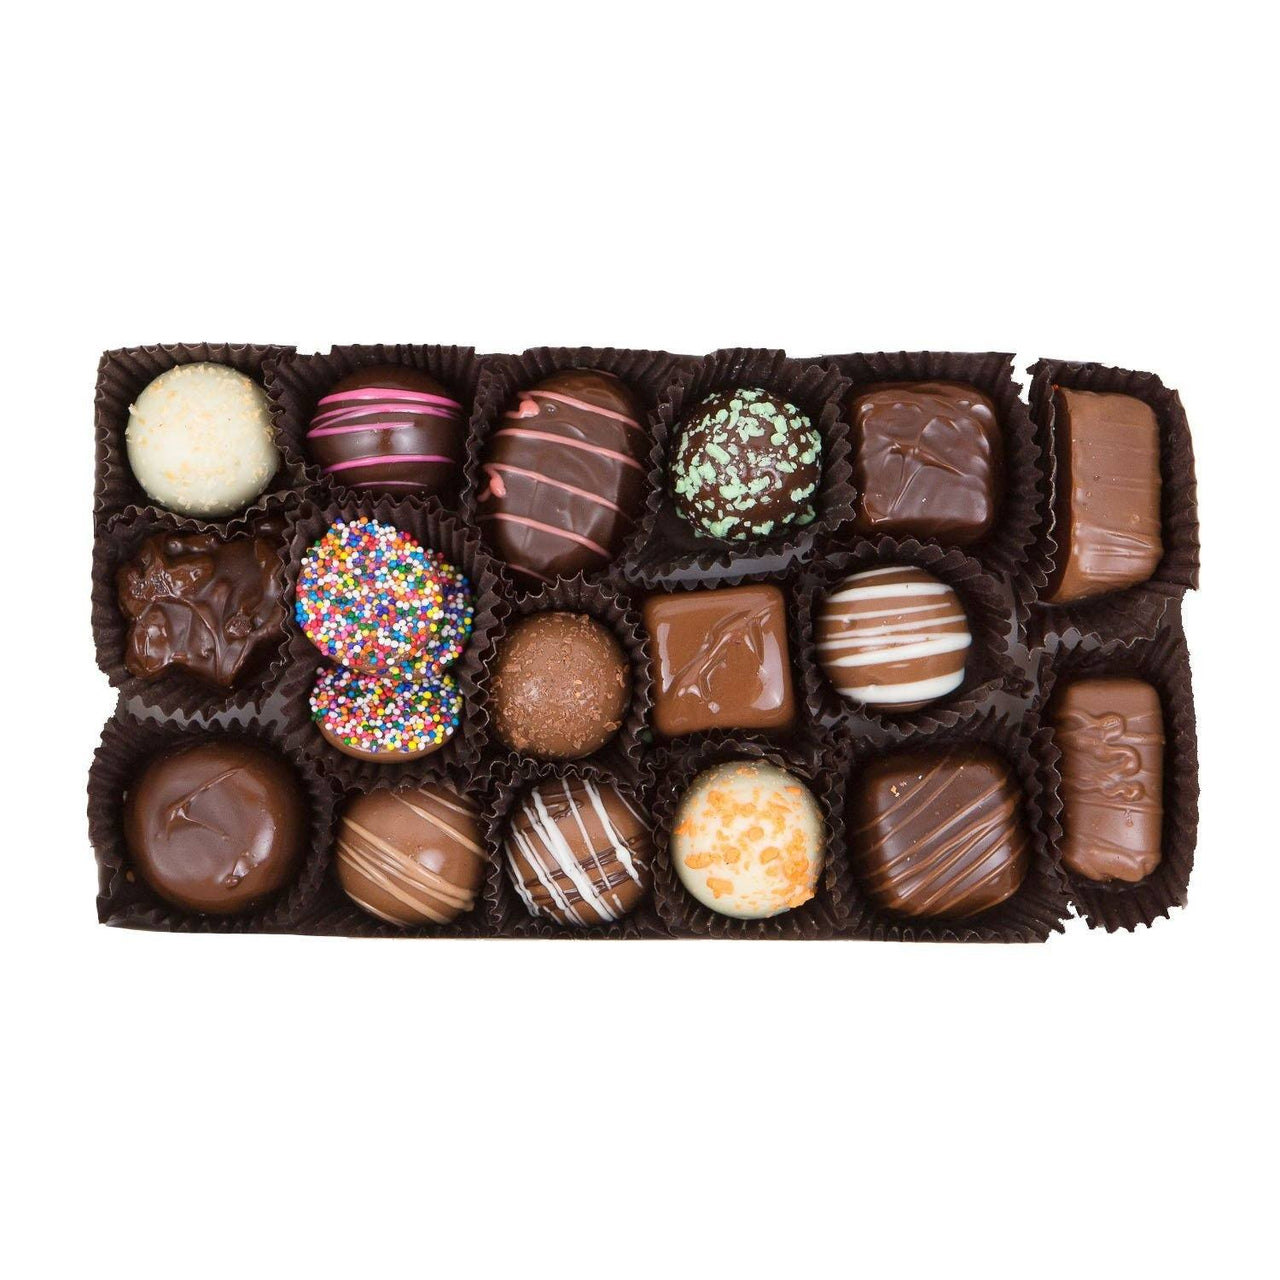 Gift Ideas for Coworkers - Chocolate Assortment Gift Box - Jackie's Chocolate (4336495394931)